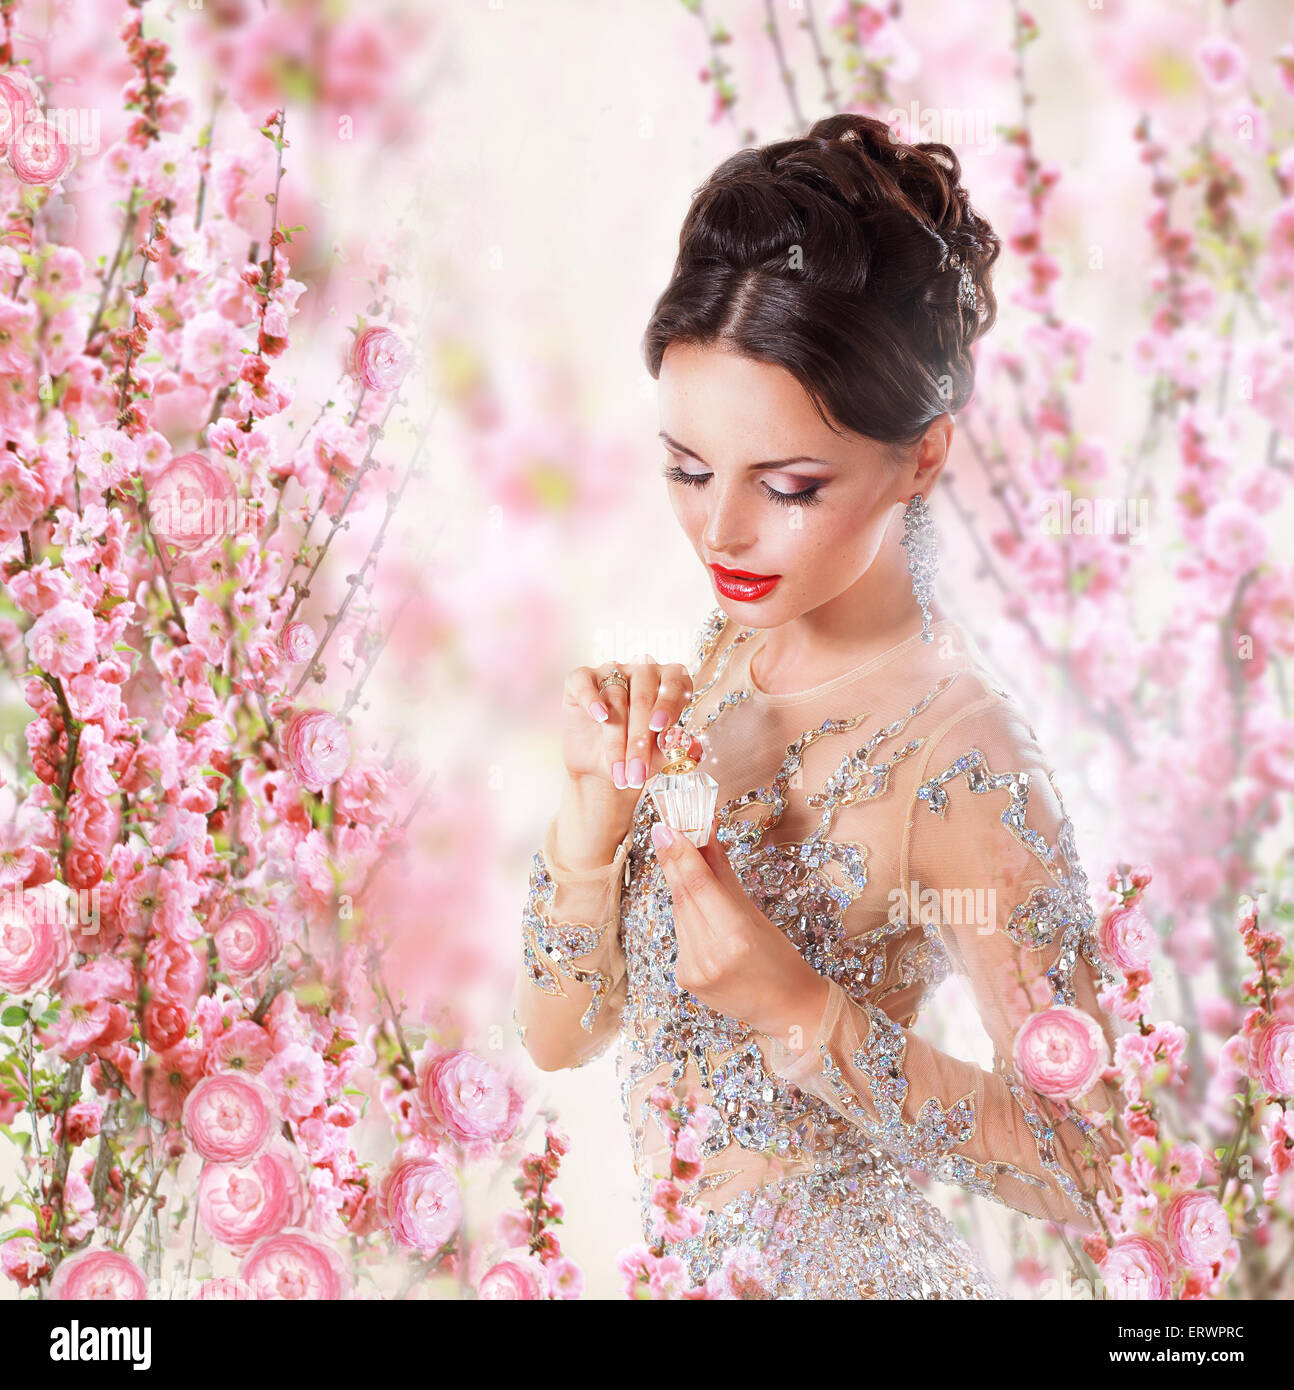 Woman with Perfume over Floral Background - Stock Image